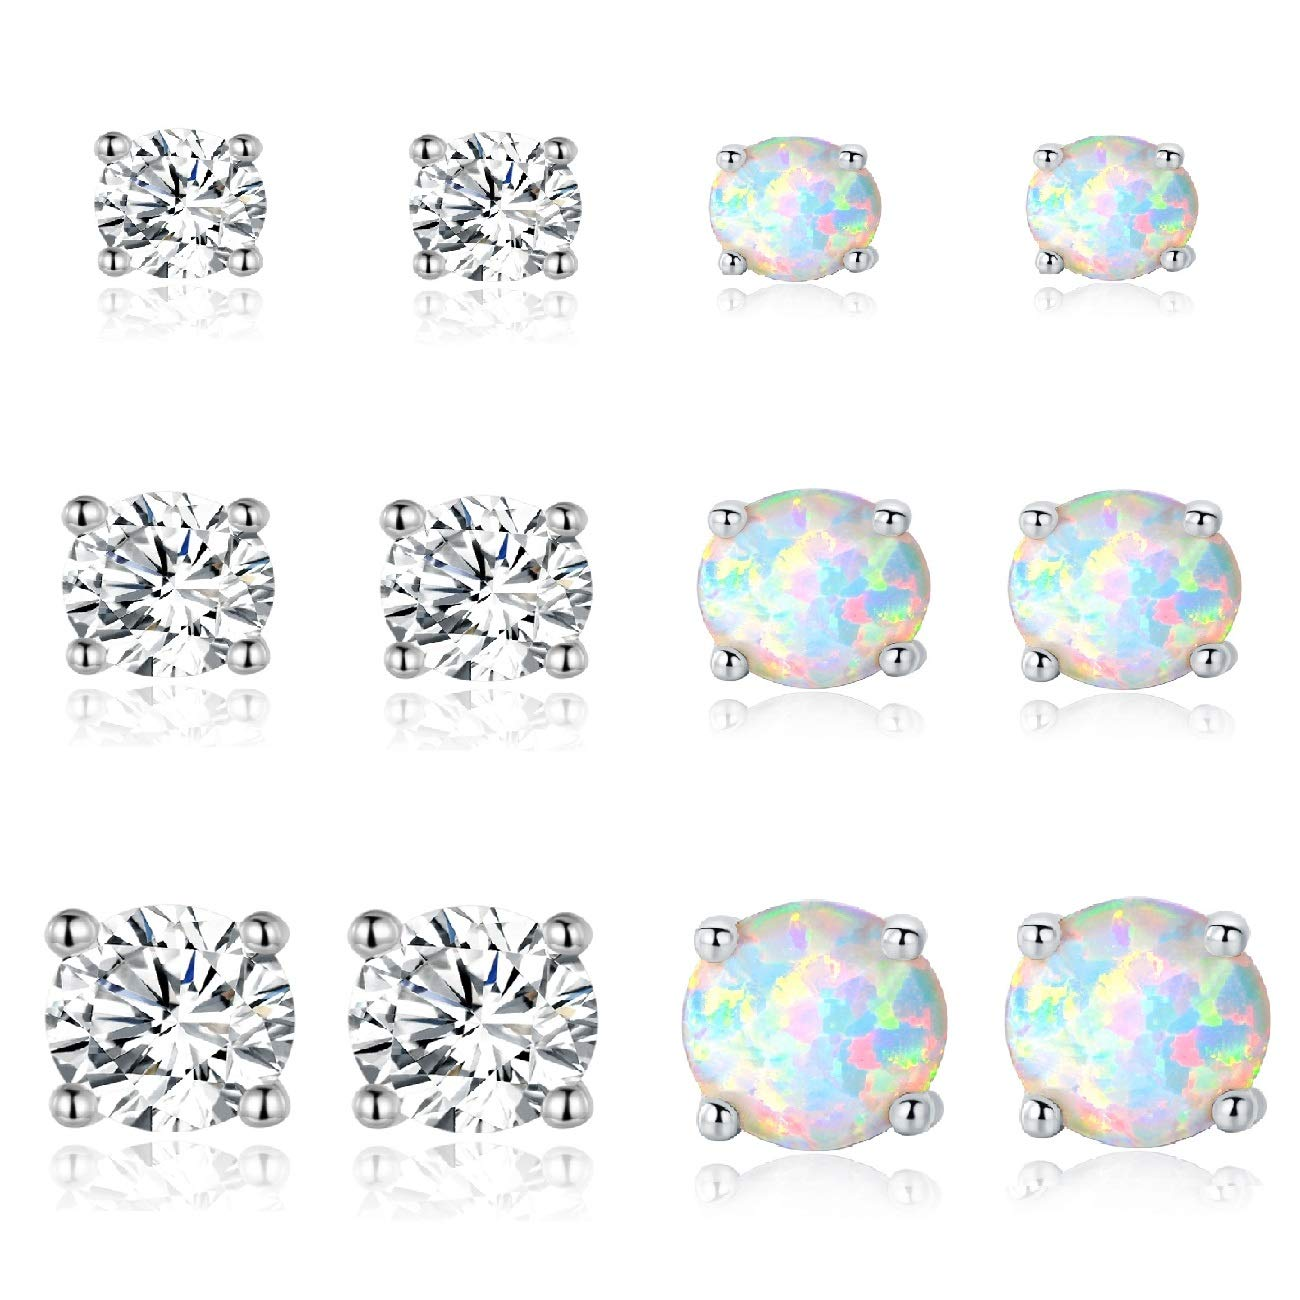 GEMSME Green White and File Opal 6mm Round Stud Earrings Pack of 3 PCS E4914